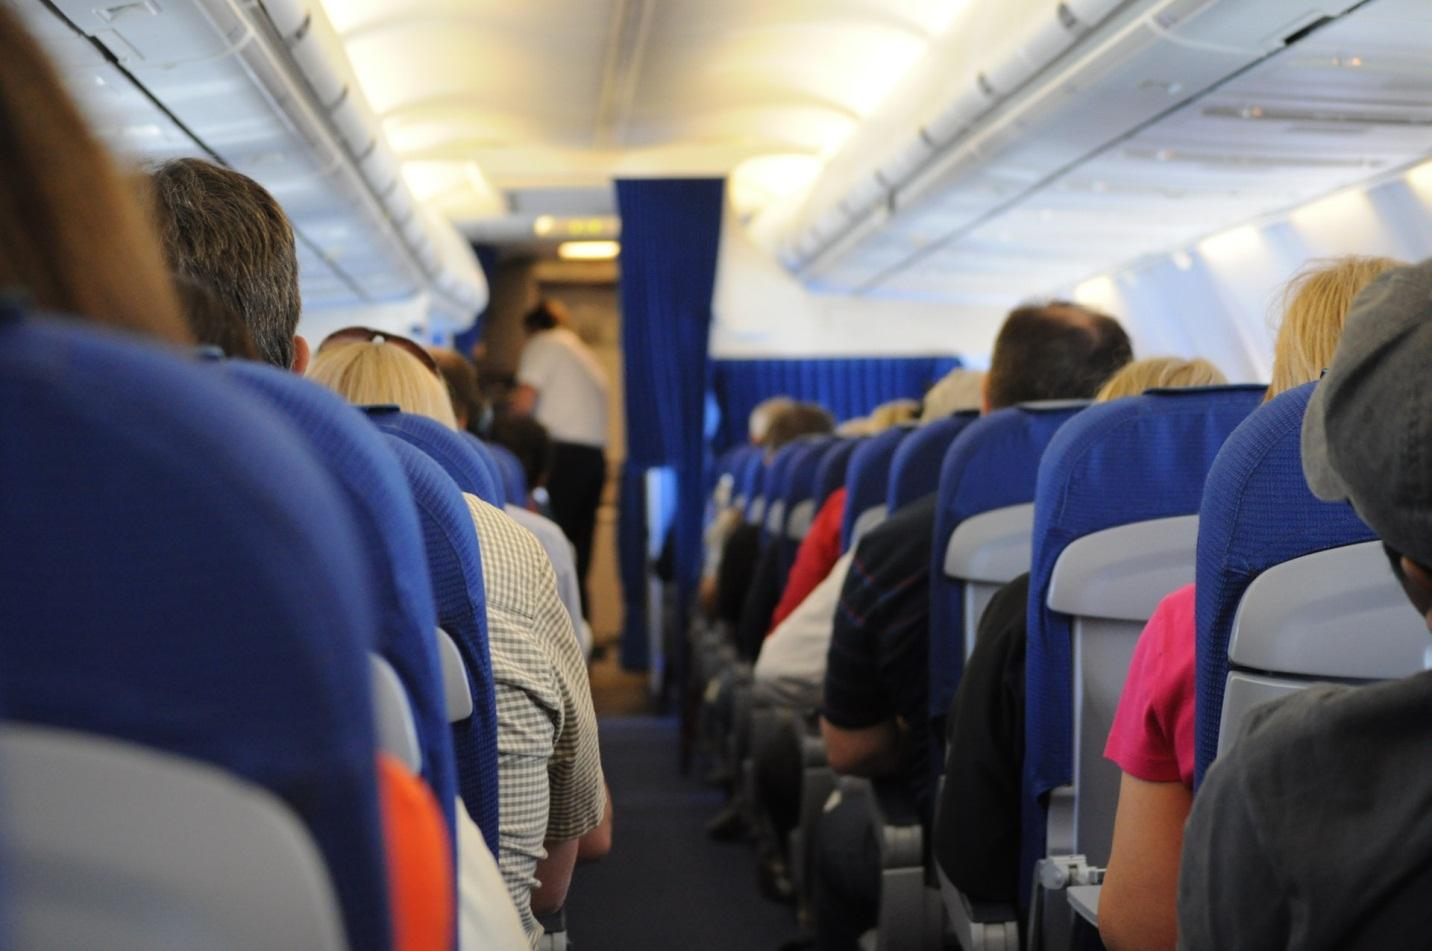 How to Be More Comfortable on a Plane